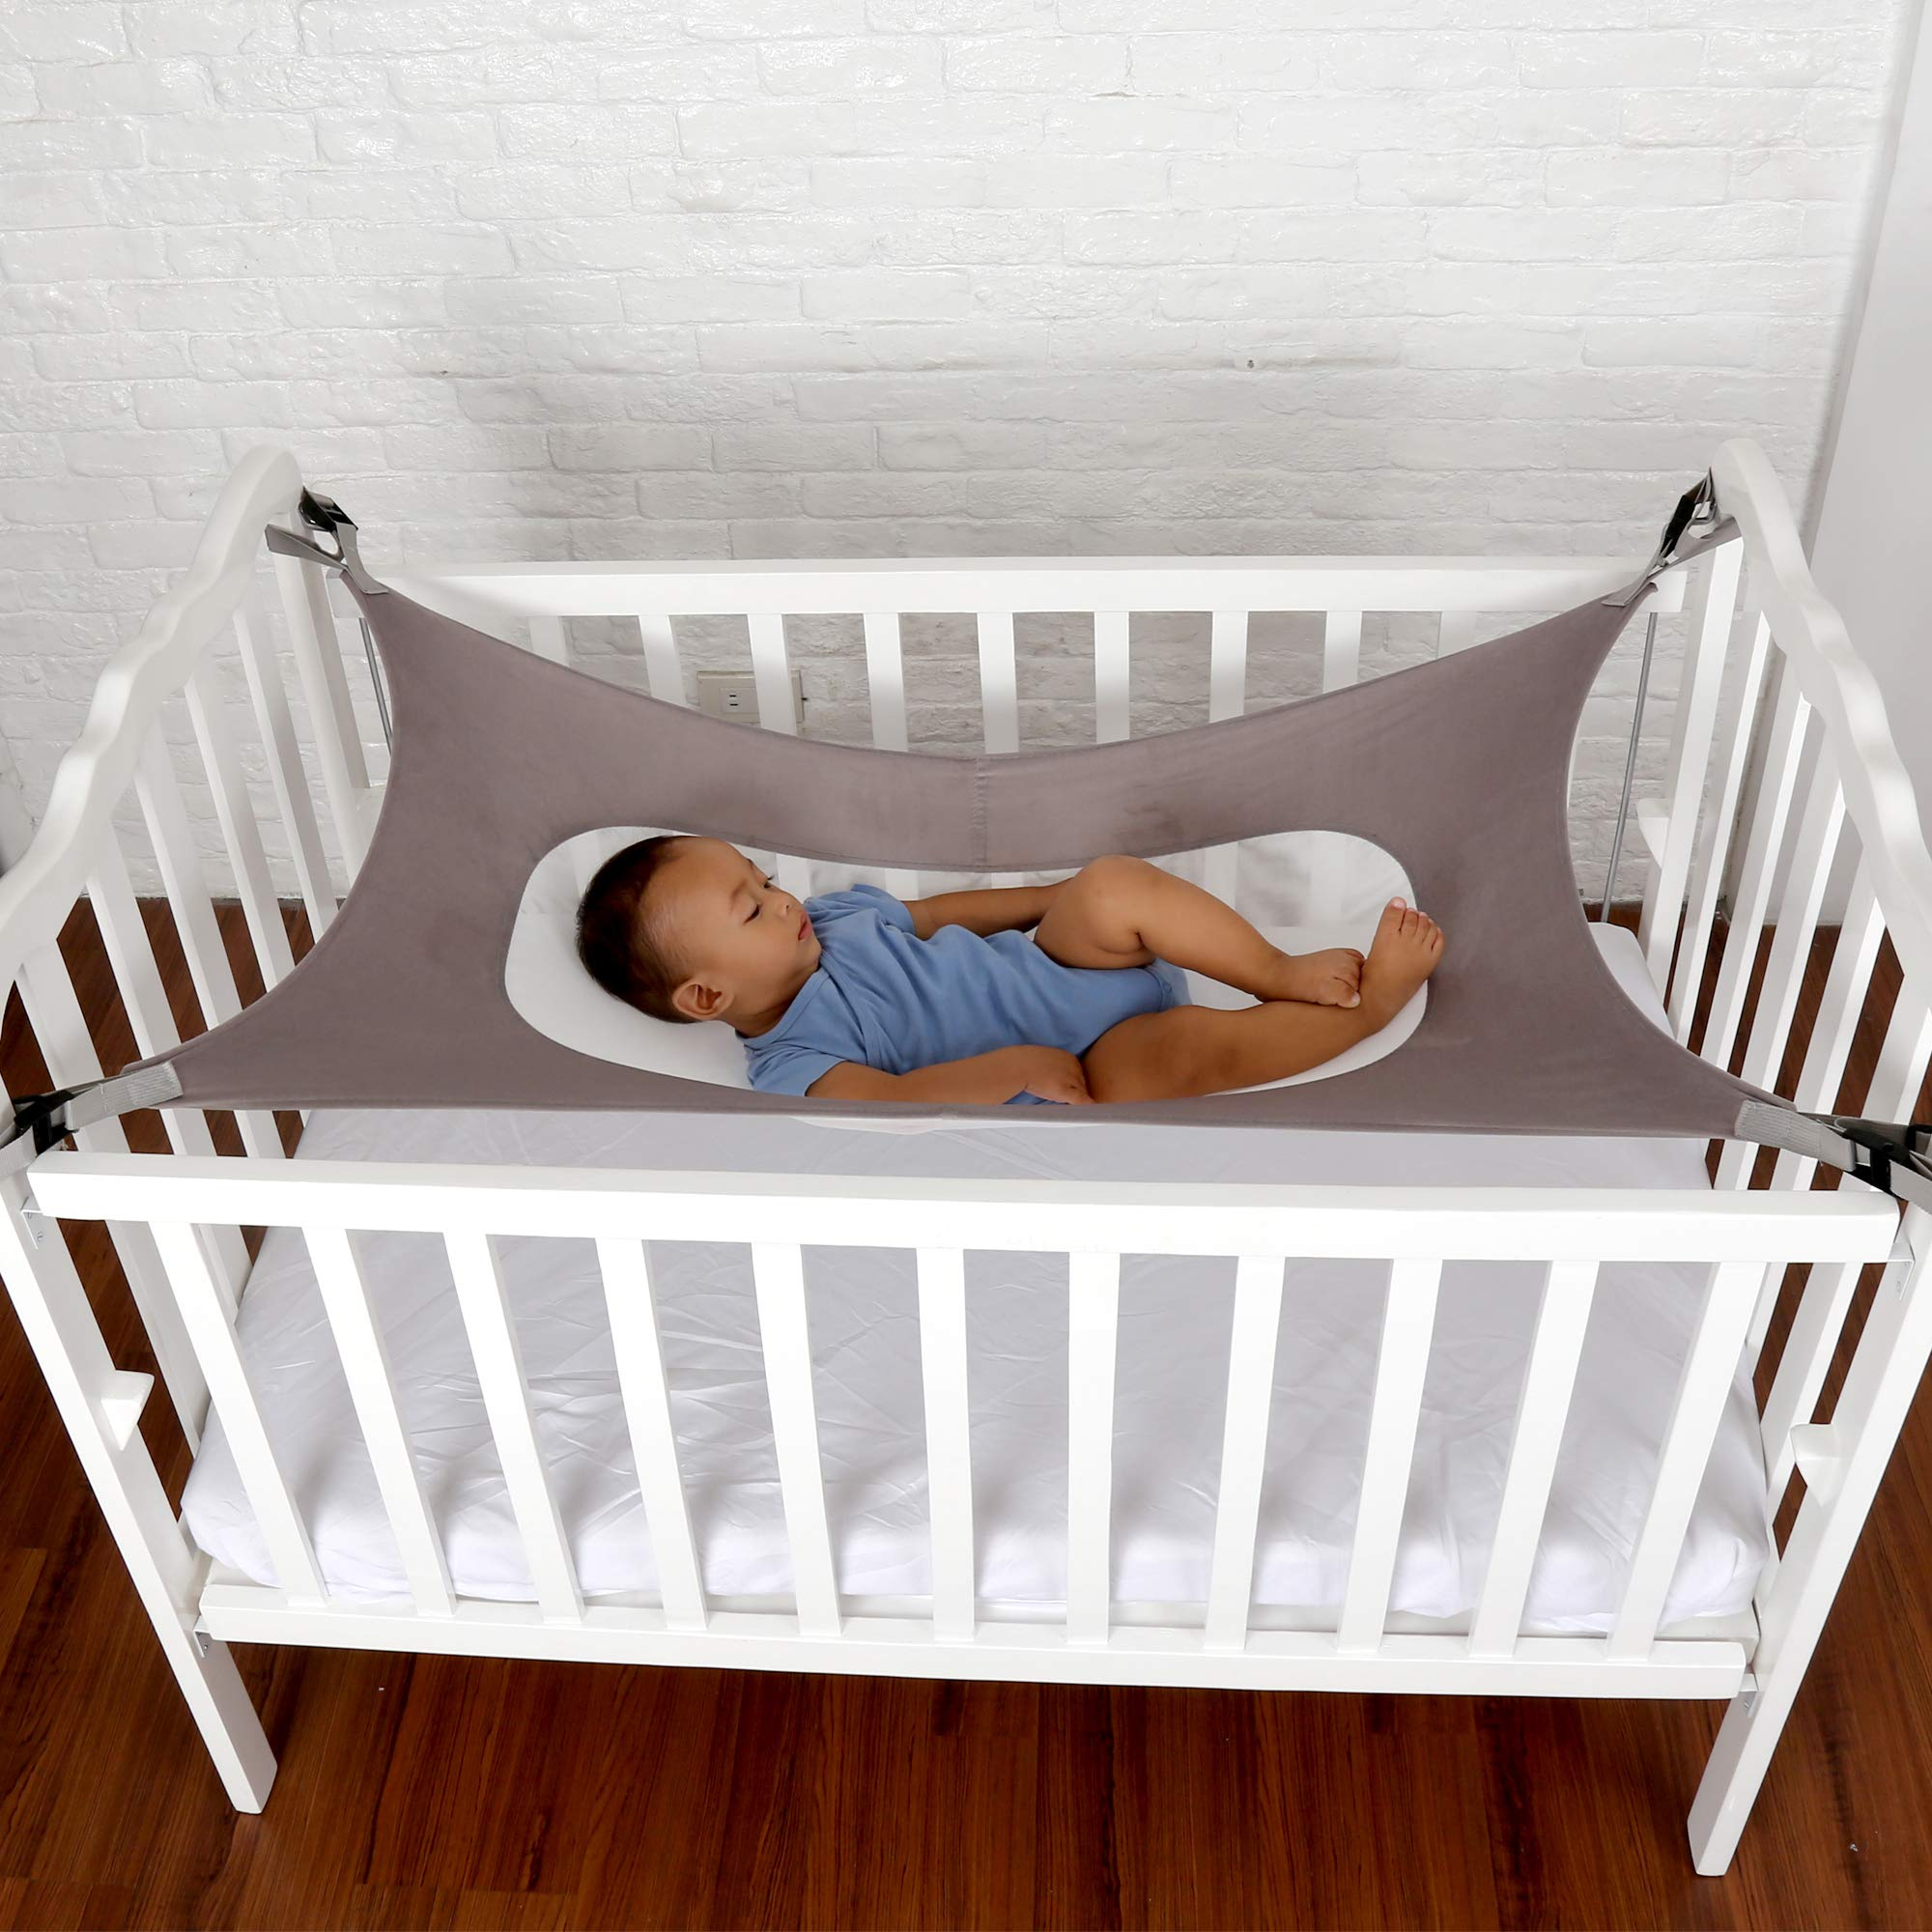 Baby Crib Hammock by Easy Gorilla - Newborn Bed Sleeping Essentials for Boys and Girls - Breathable and Portable - Infant Sleep Comfort Gifts for Indoor Cot - Cradle - Safety Mesh Nursery Nap Hammocks by EasyGorilla (Image #5)